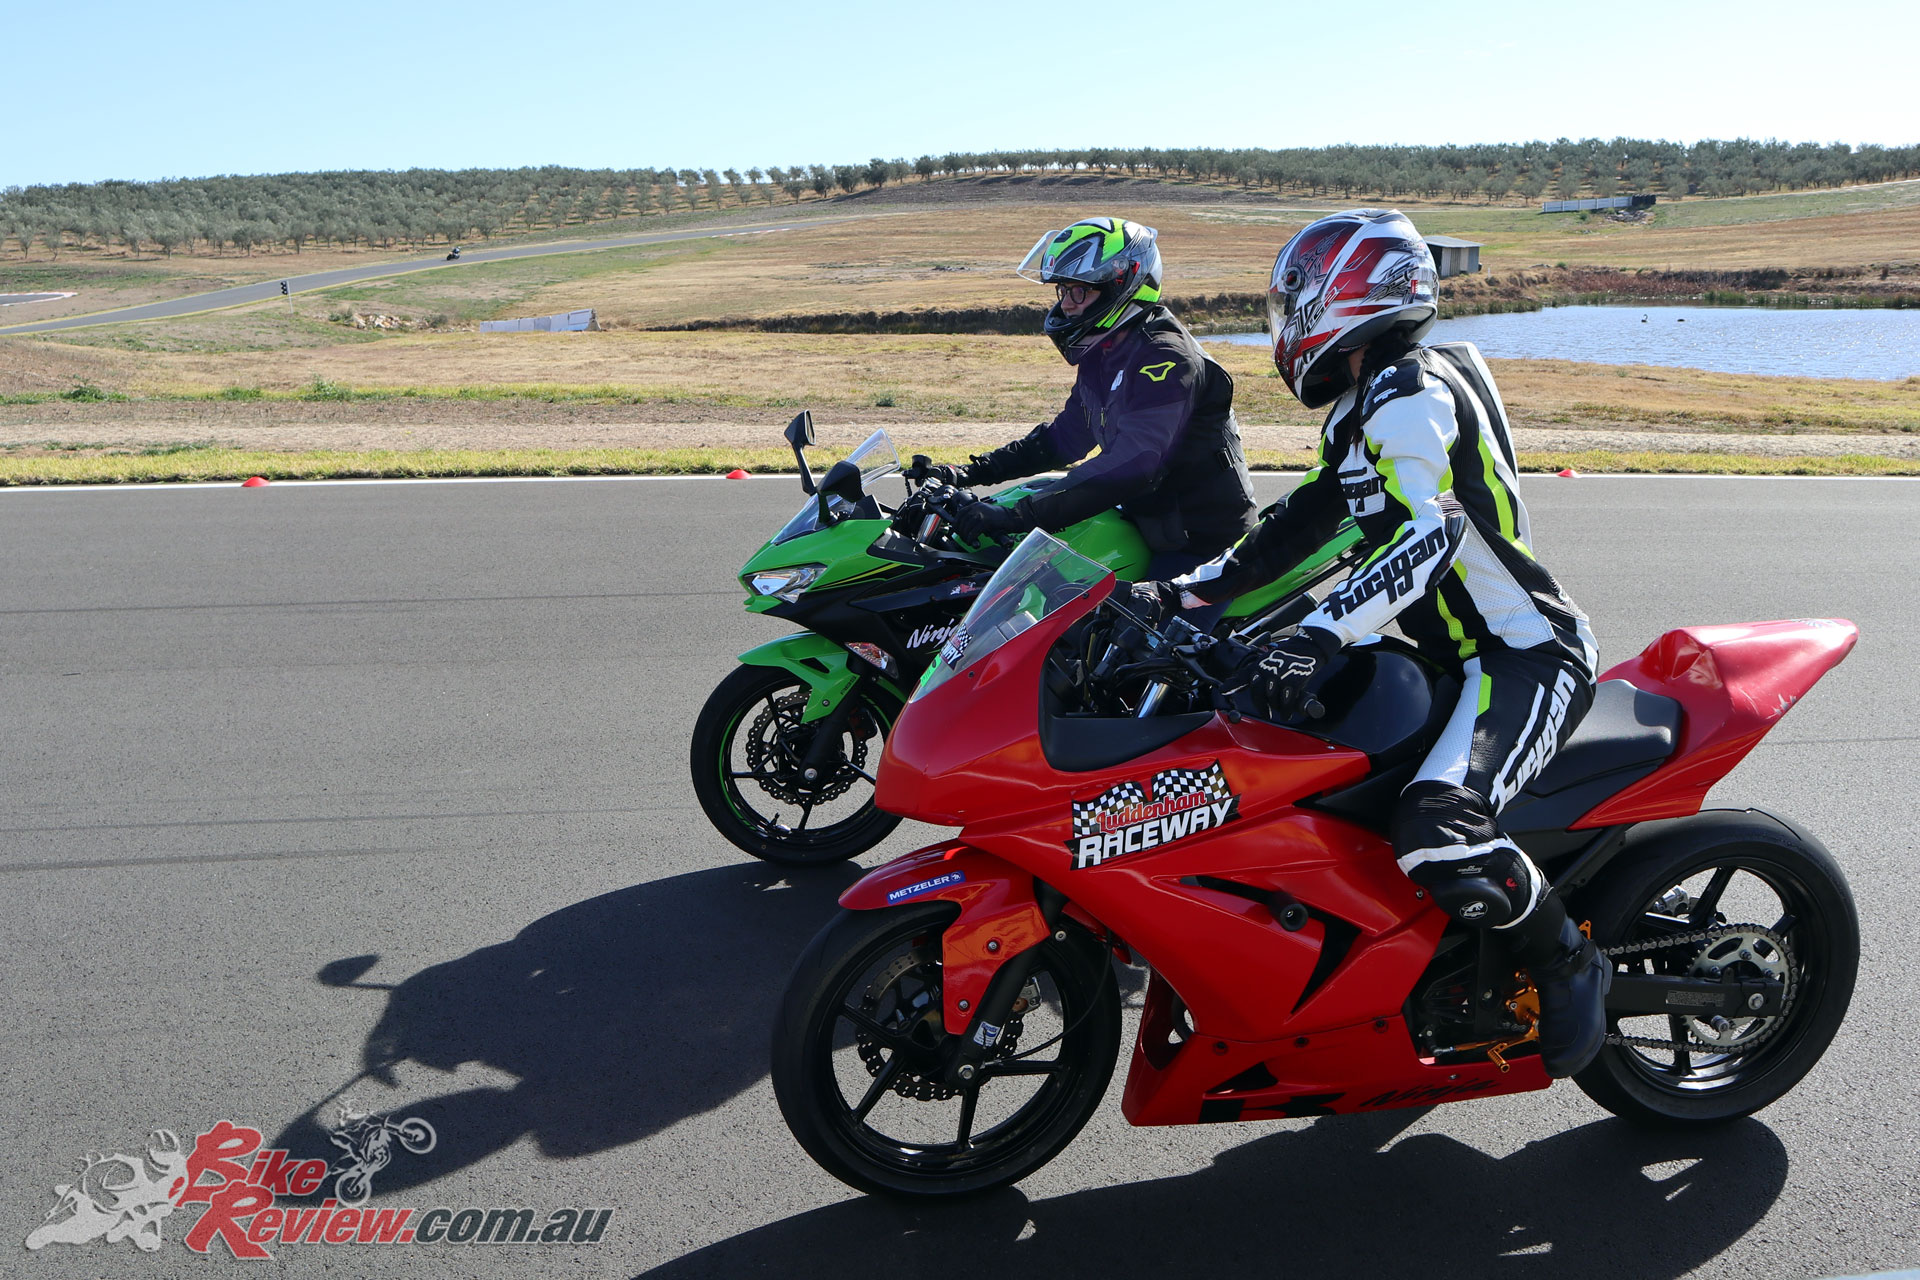 Top Rider instructor Melita offering some one on one instruction